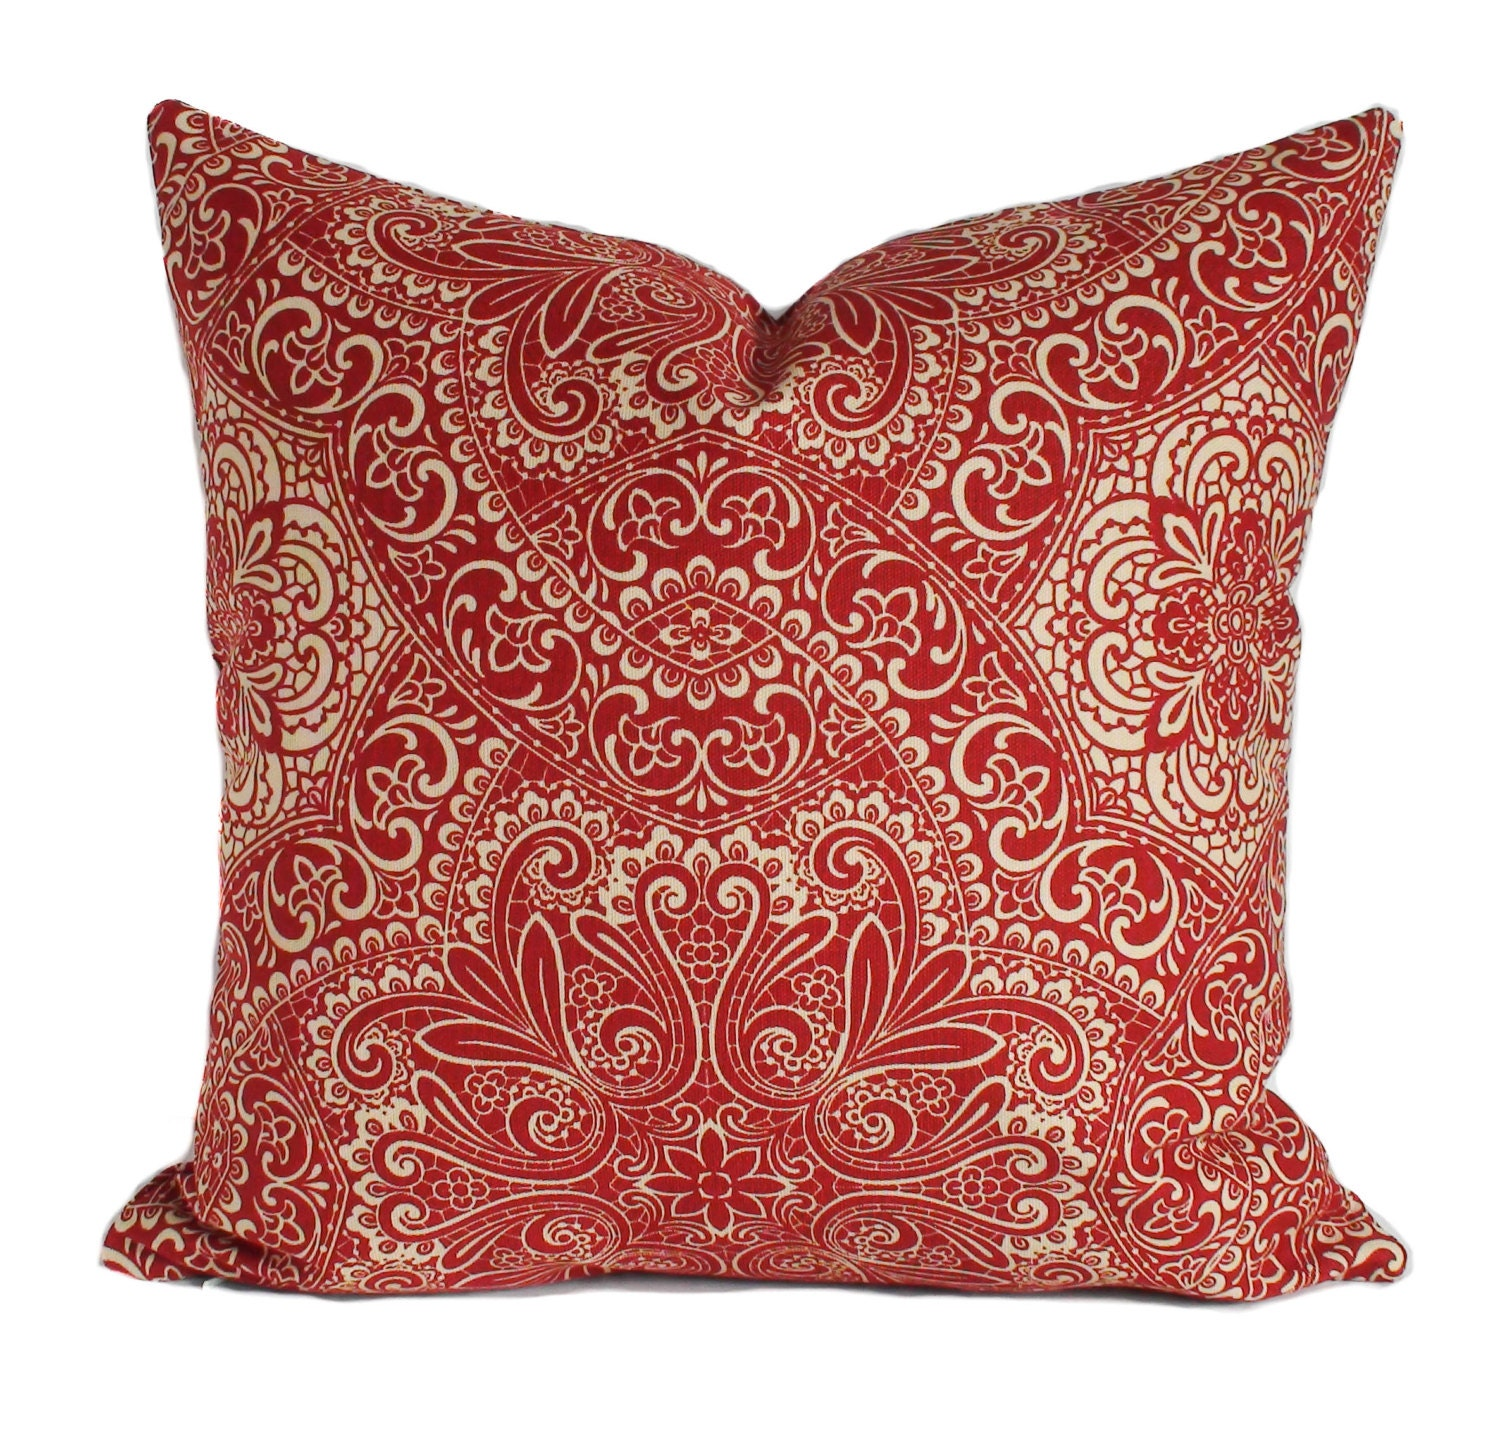 How To Make Decorative Throw Pillow Covers : Red pillow cover Decorative pillow Red throw pillow